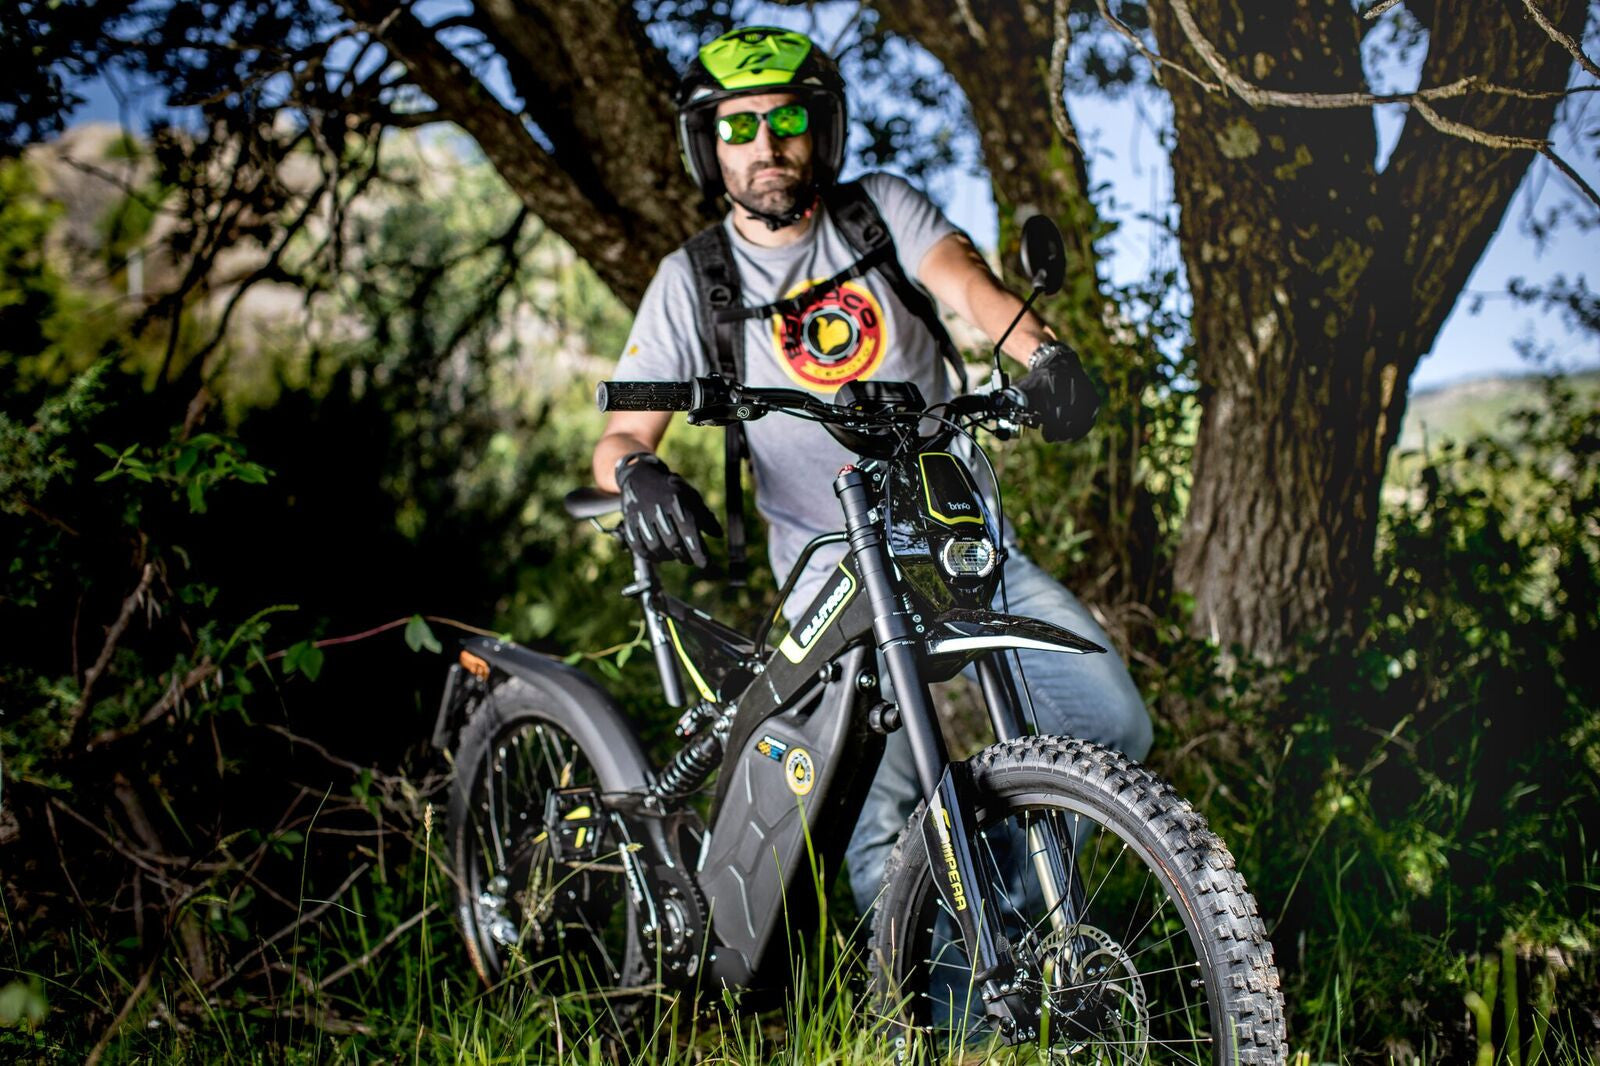 Bultaco Brinco C Restyle Day Time Shoot 5